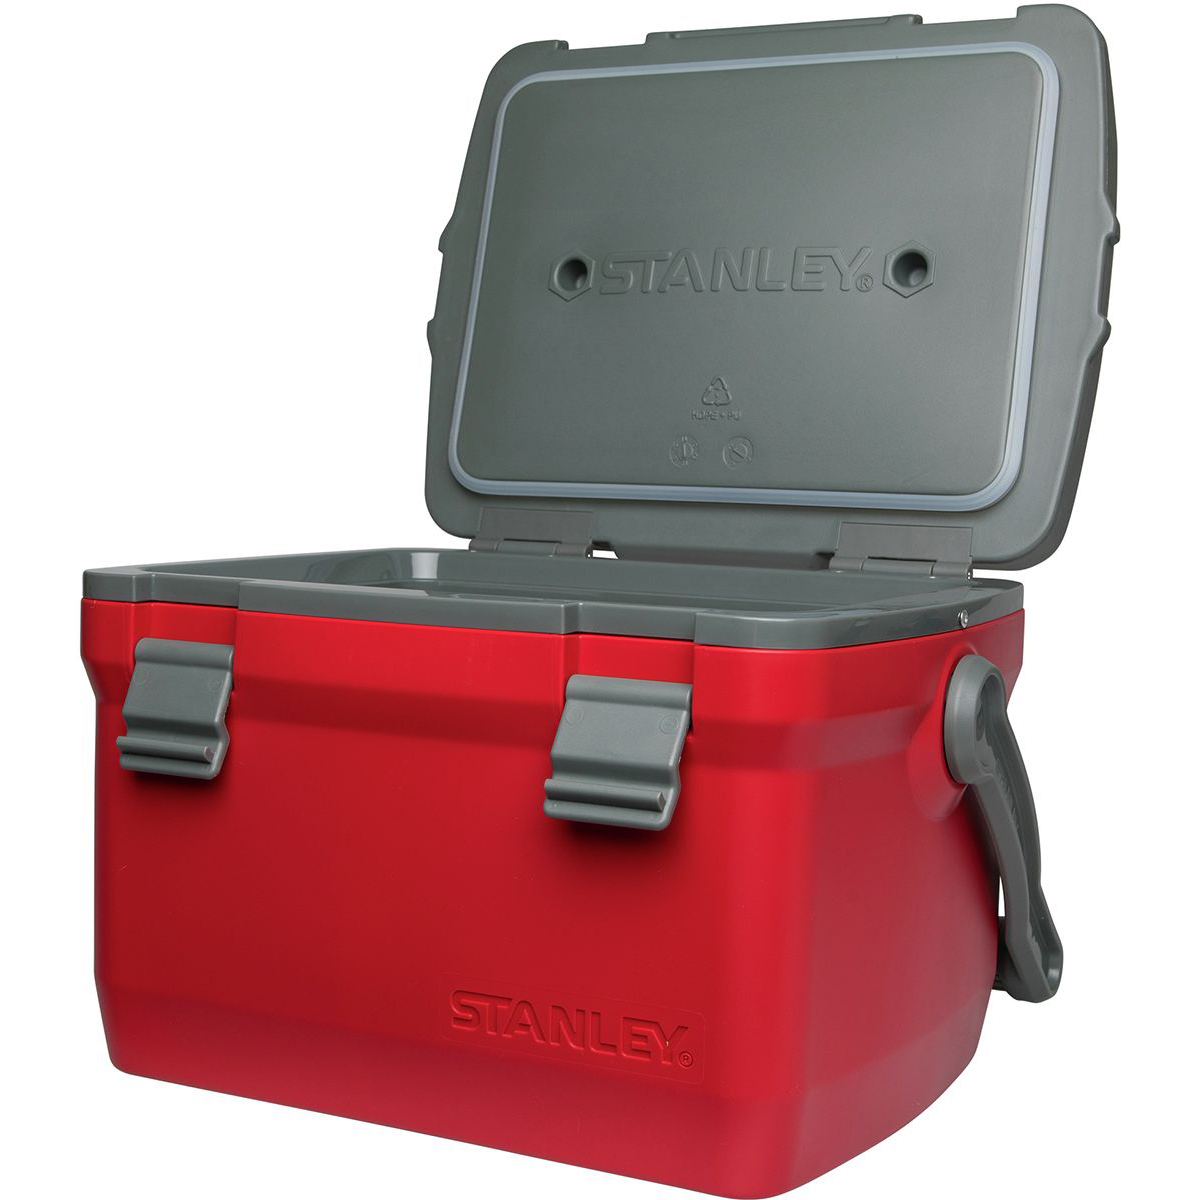 Stanley-Adventure-7-qt-Easy-Carry-Foam-Insulated-Outdoor-Cooler thumbnail 7